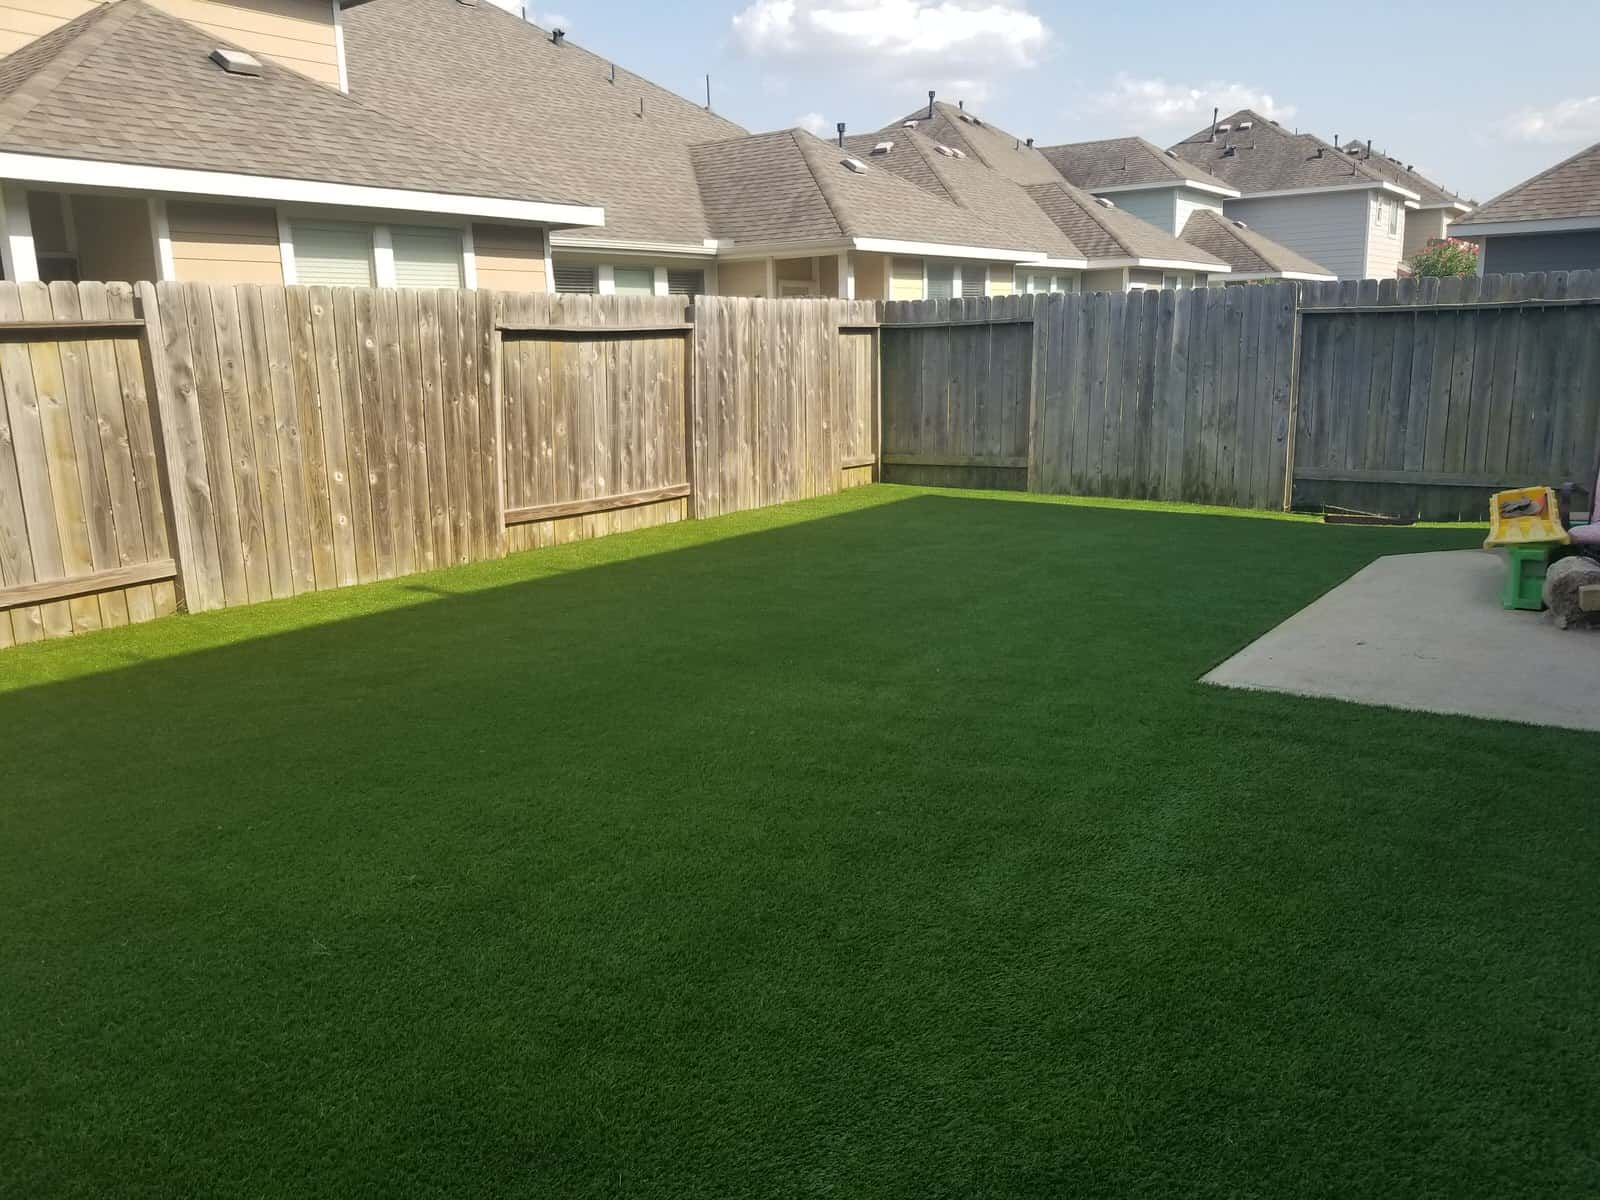 helms professional backyard synthetic grass complete